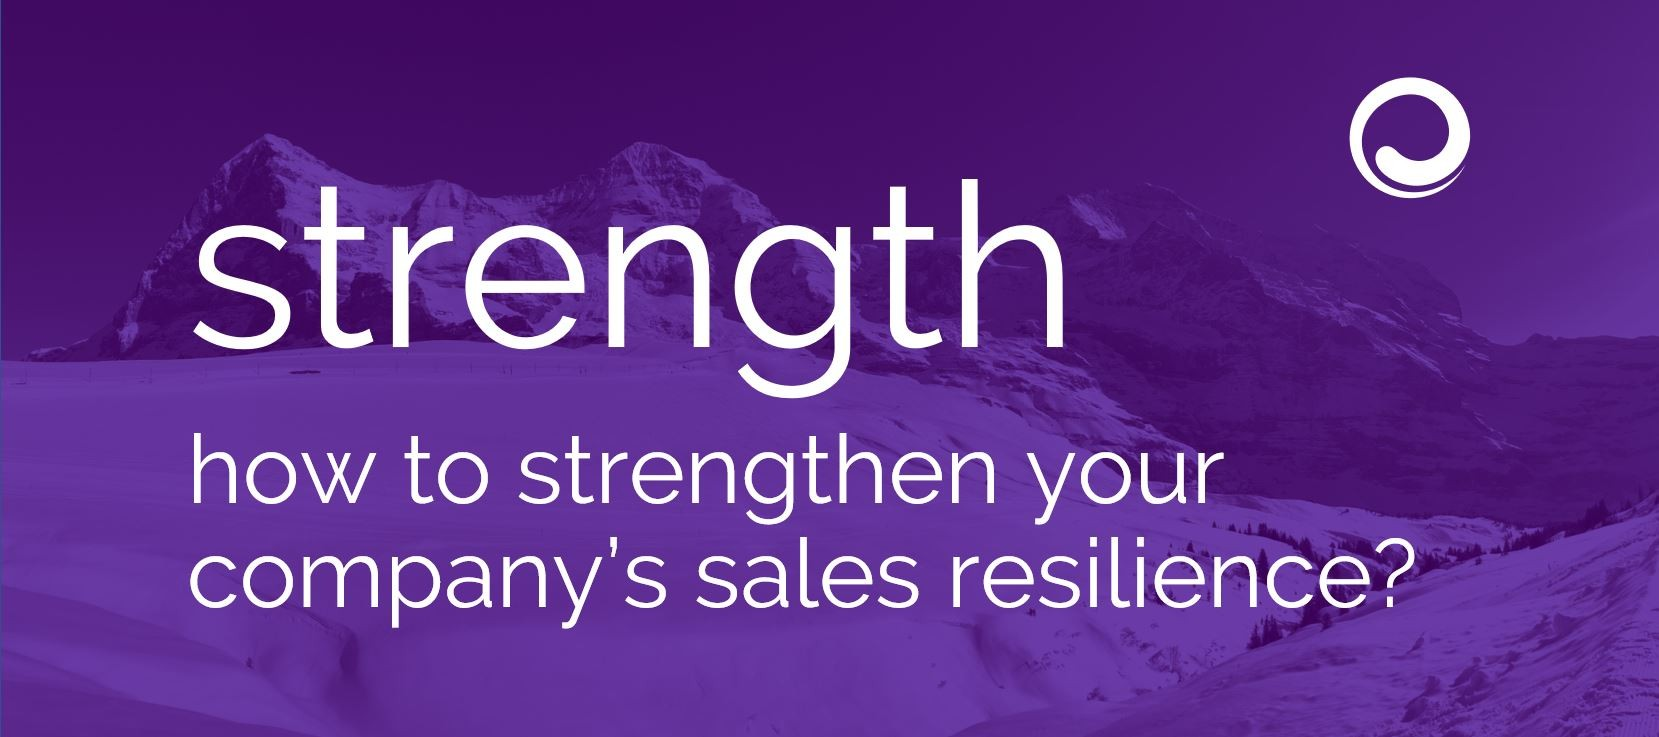 Magazin - strength - sales resilience 09-2021